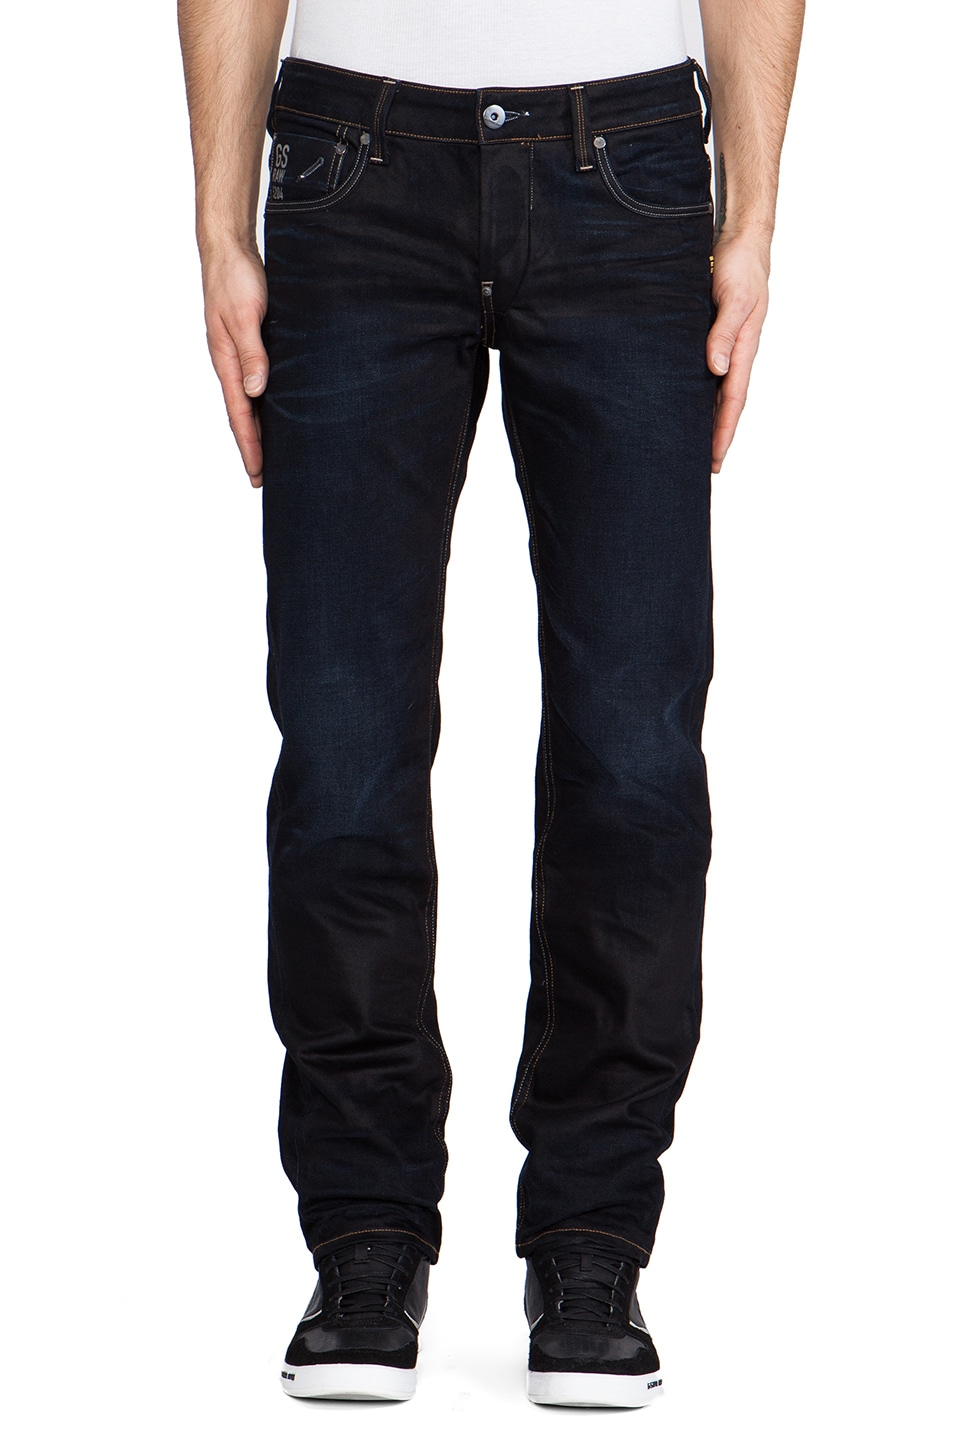 G-Star Attacc Low Straight Lexicon Denim in Indigo Aged